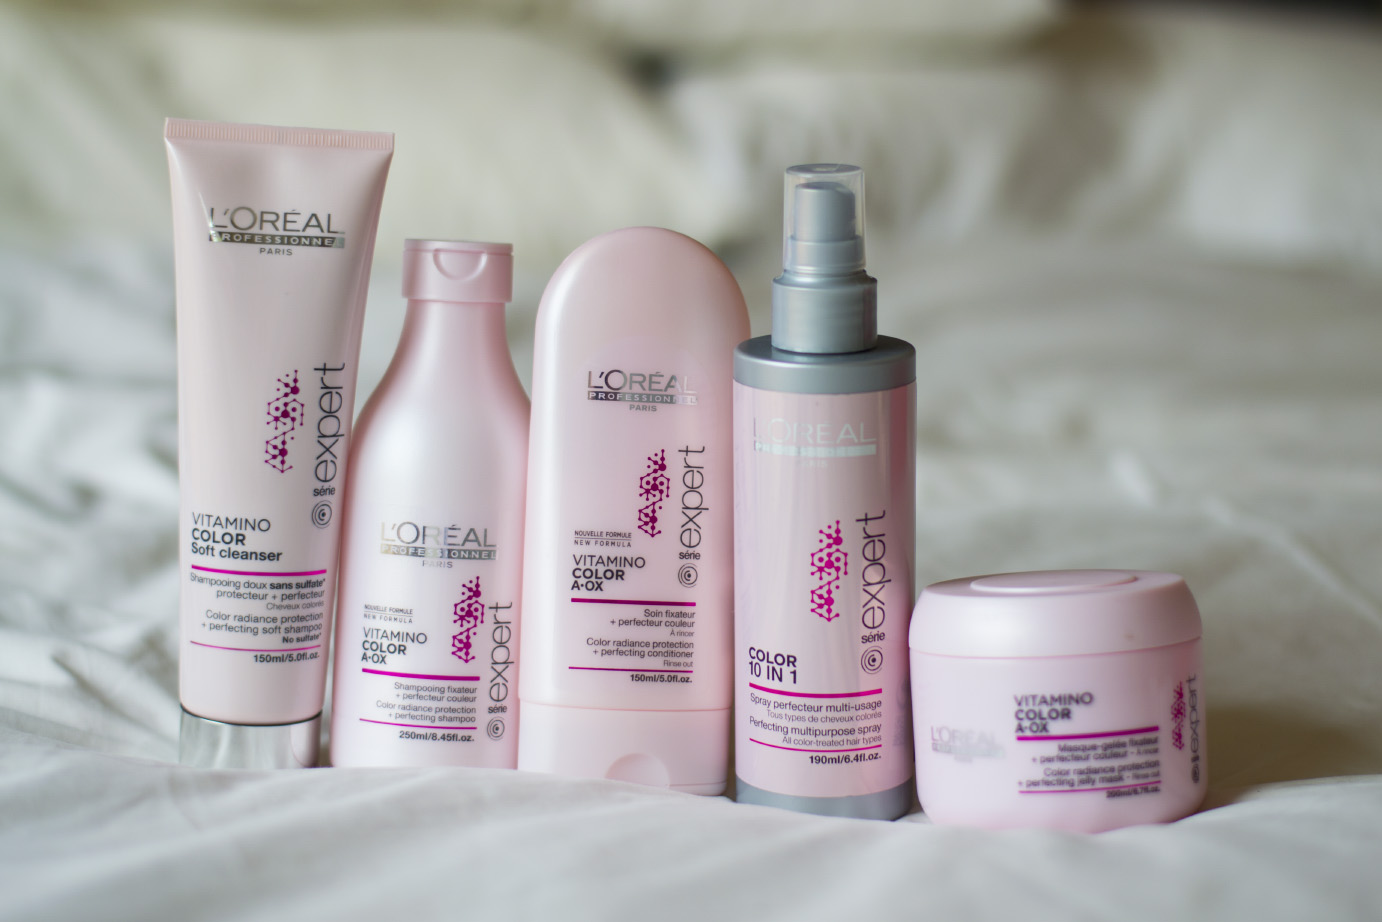 L'Oreal Professionel Paris Vitamino Color A-OX range